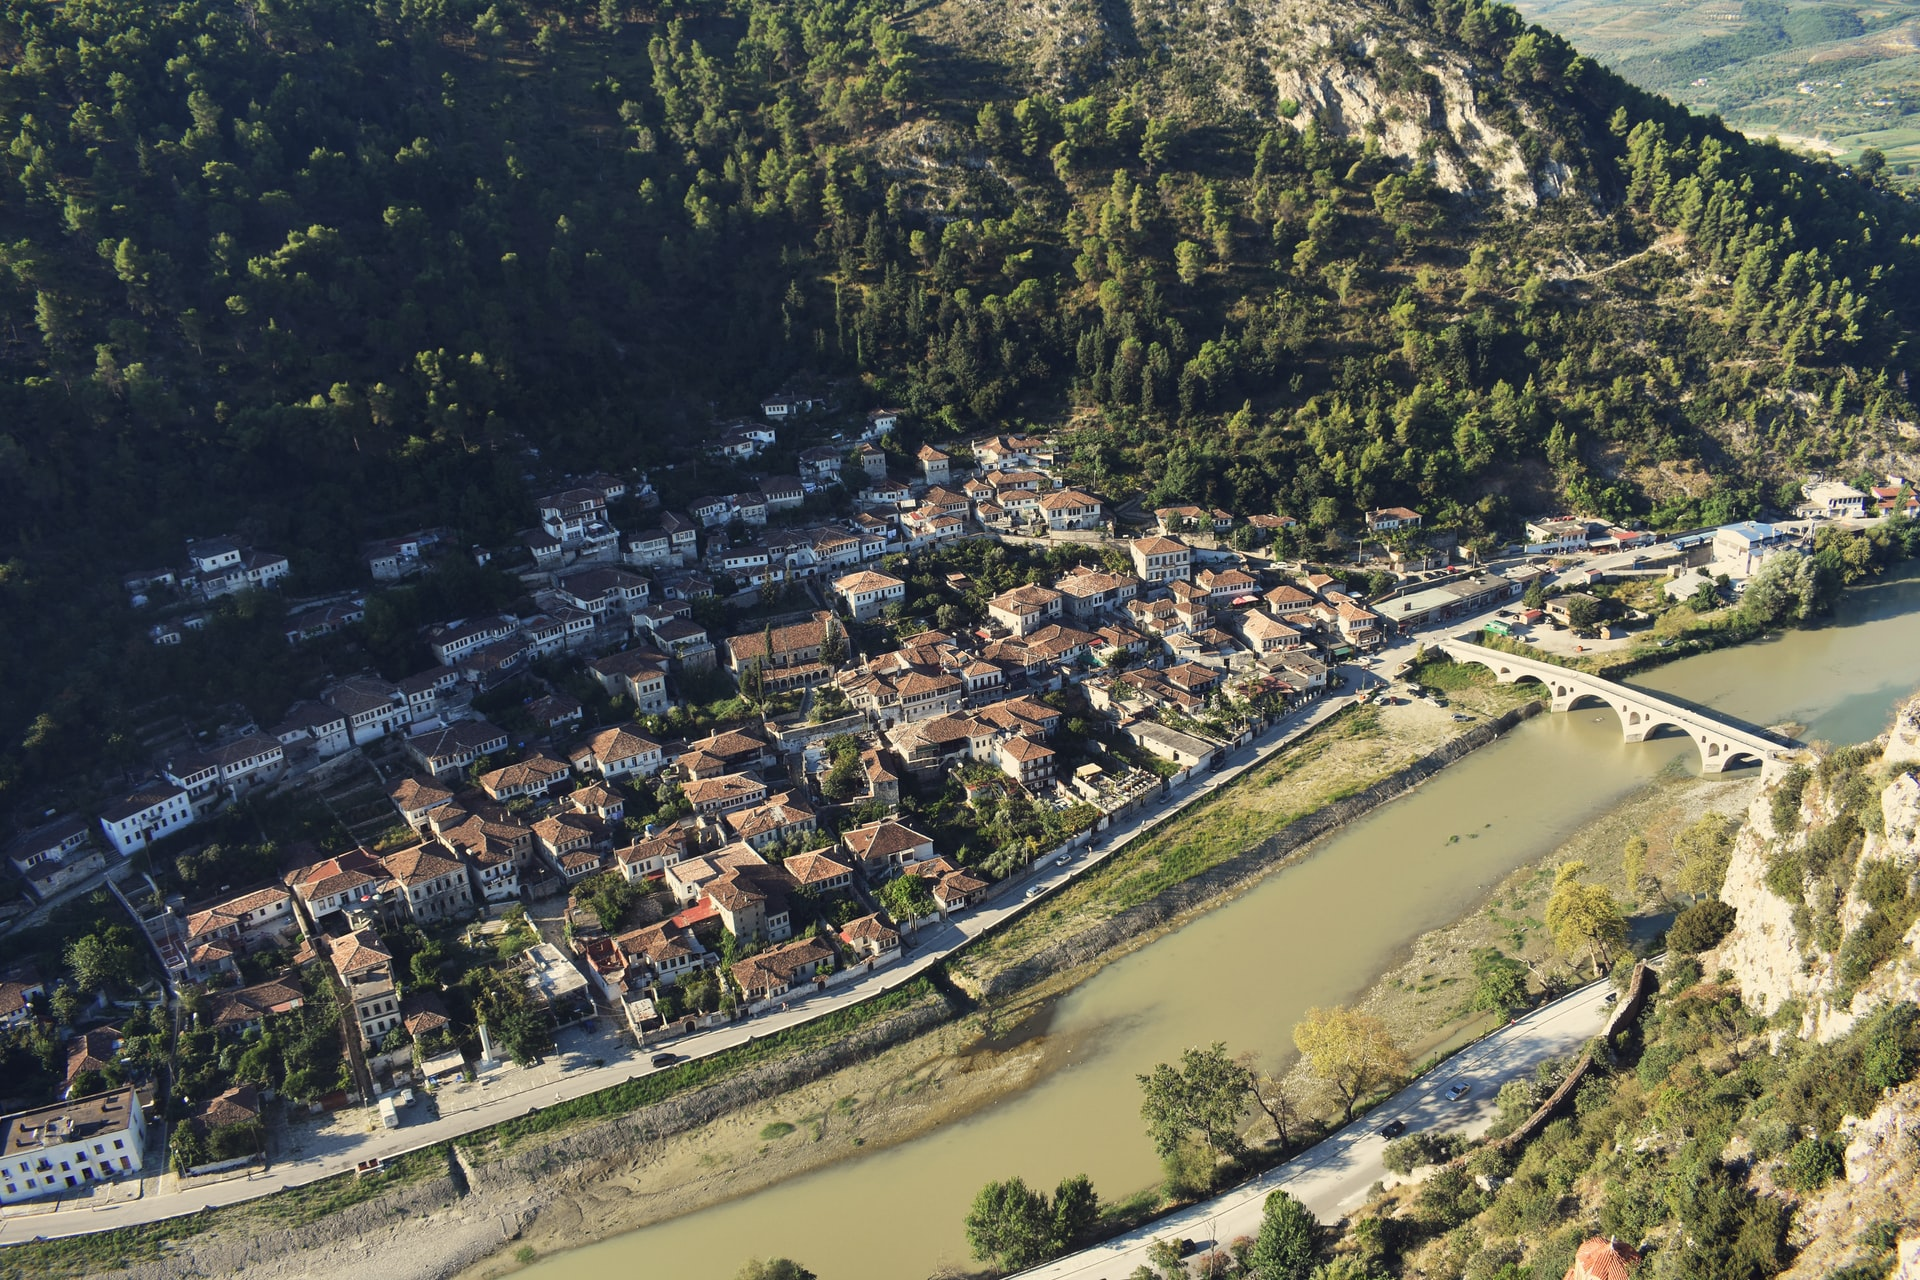 an aerial view of the city of Berat showing a river, a bridge and houses along the hillside